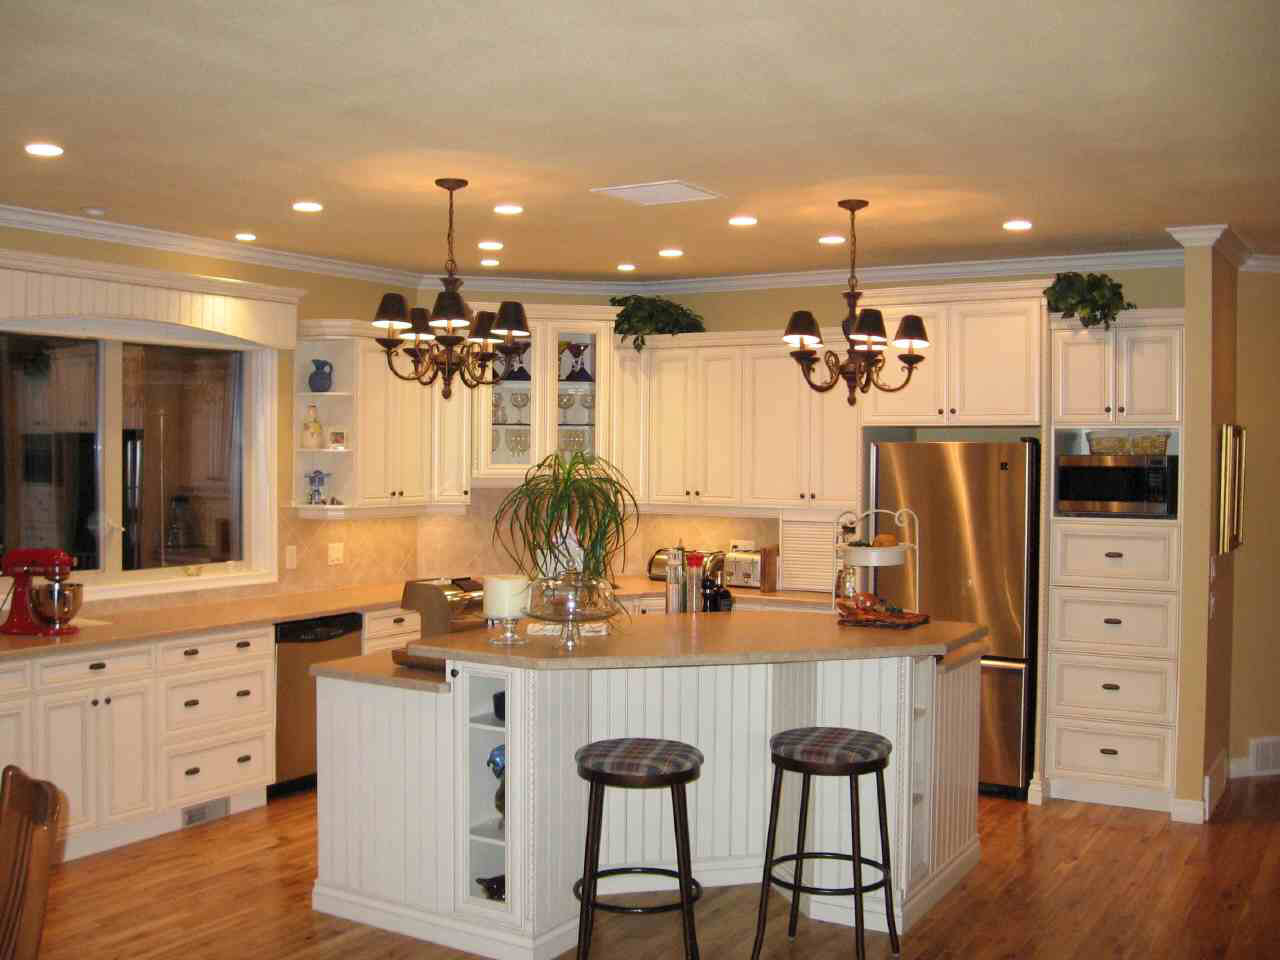 Peartreedesigns beautiful modern kitchen interiors for Interior designs kitchen